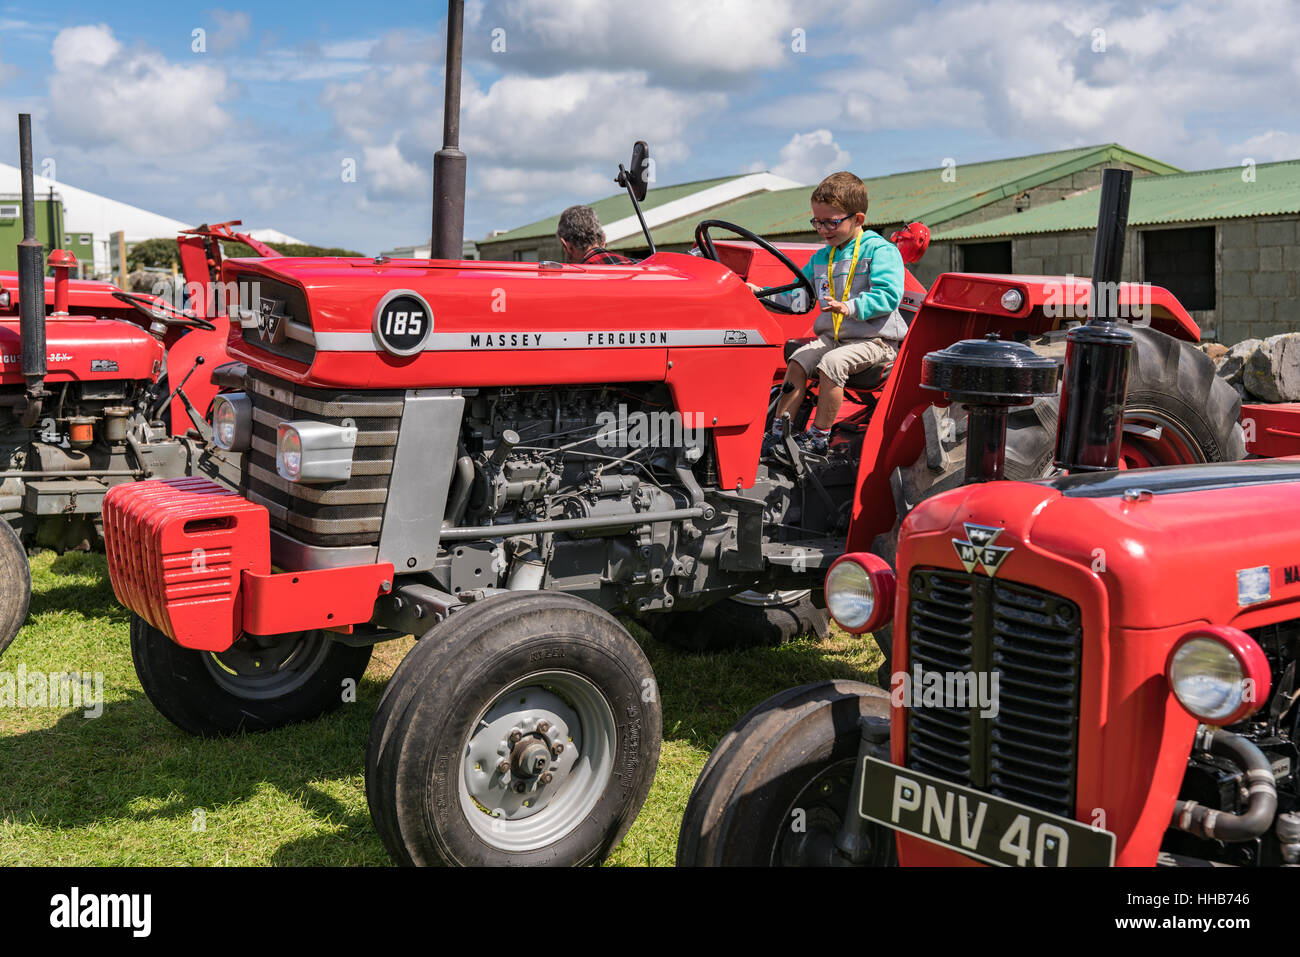 A young boy tries the wheel of a vintage Massey Ferguson 185 Tractor at  Anglesey Show